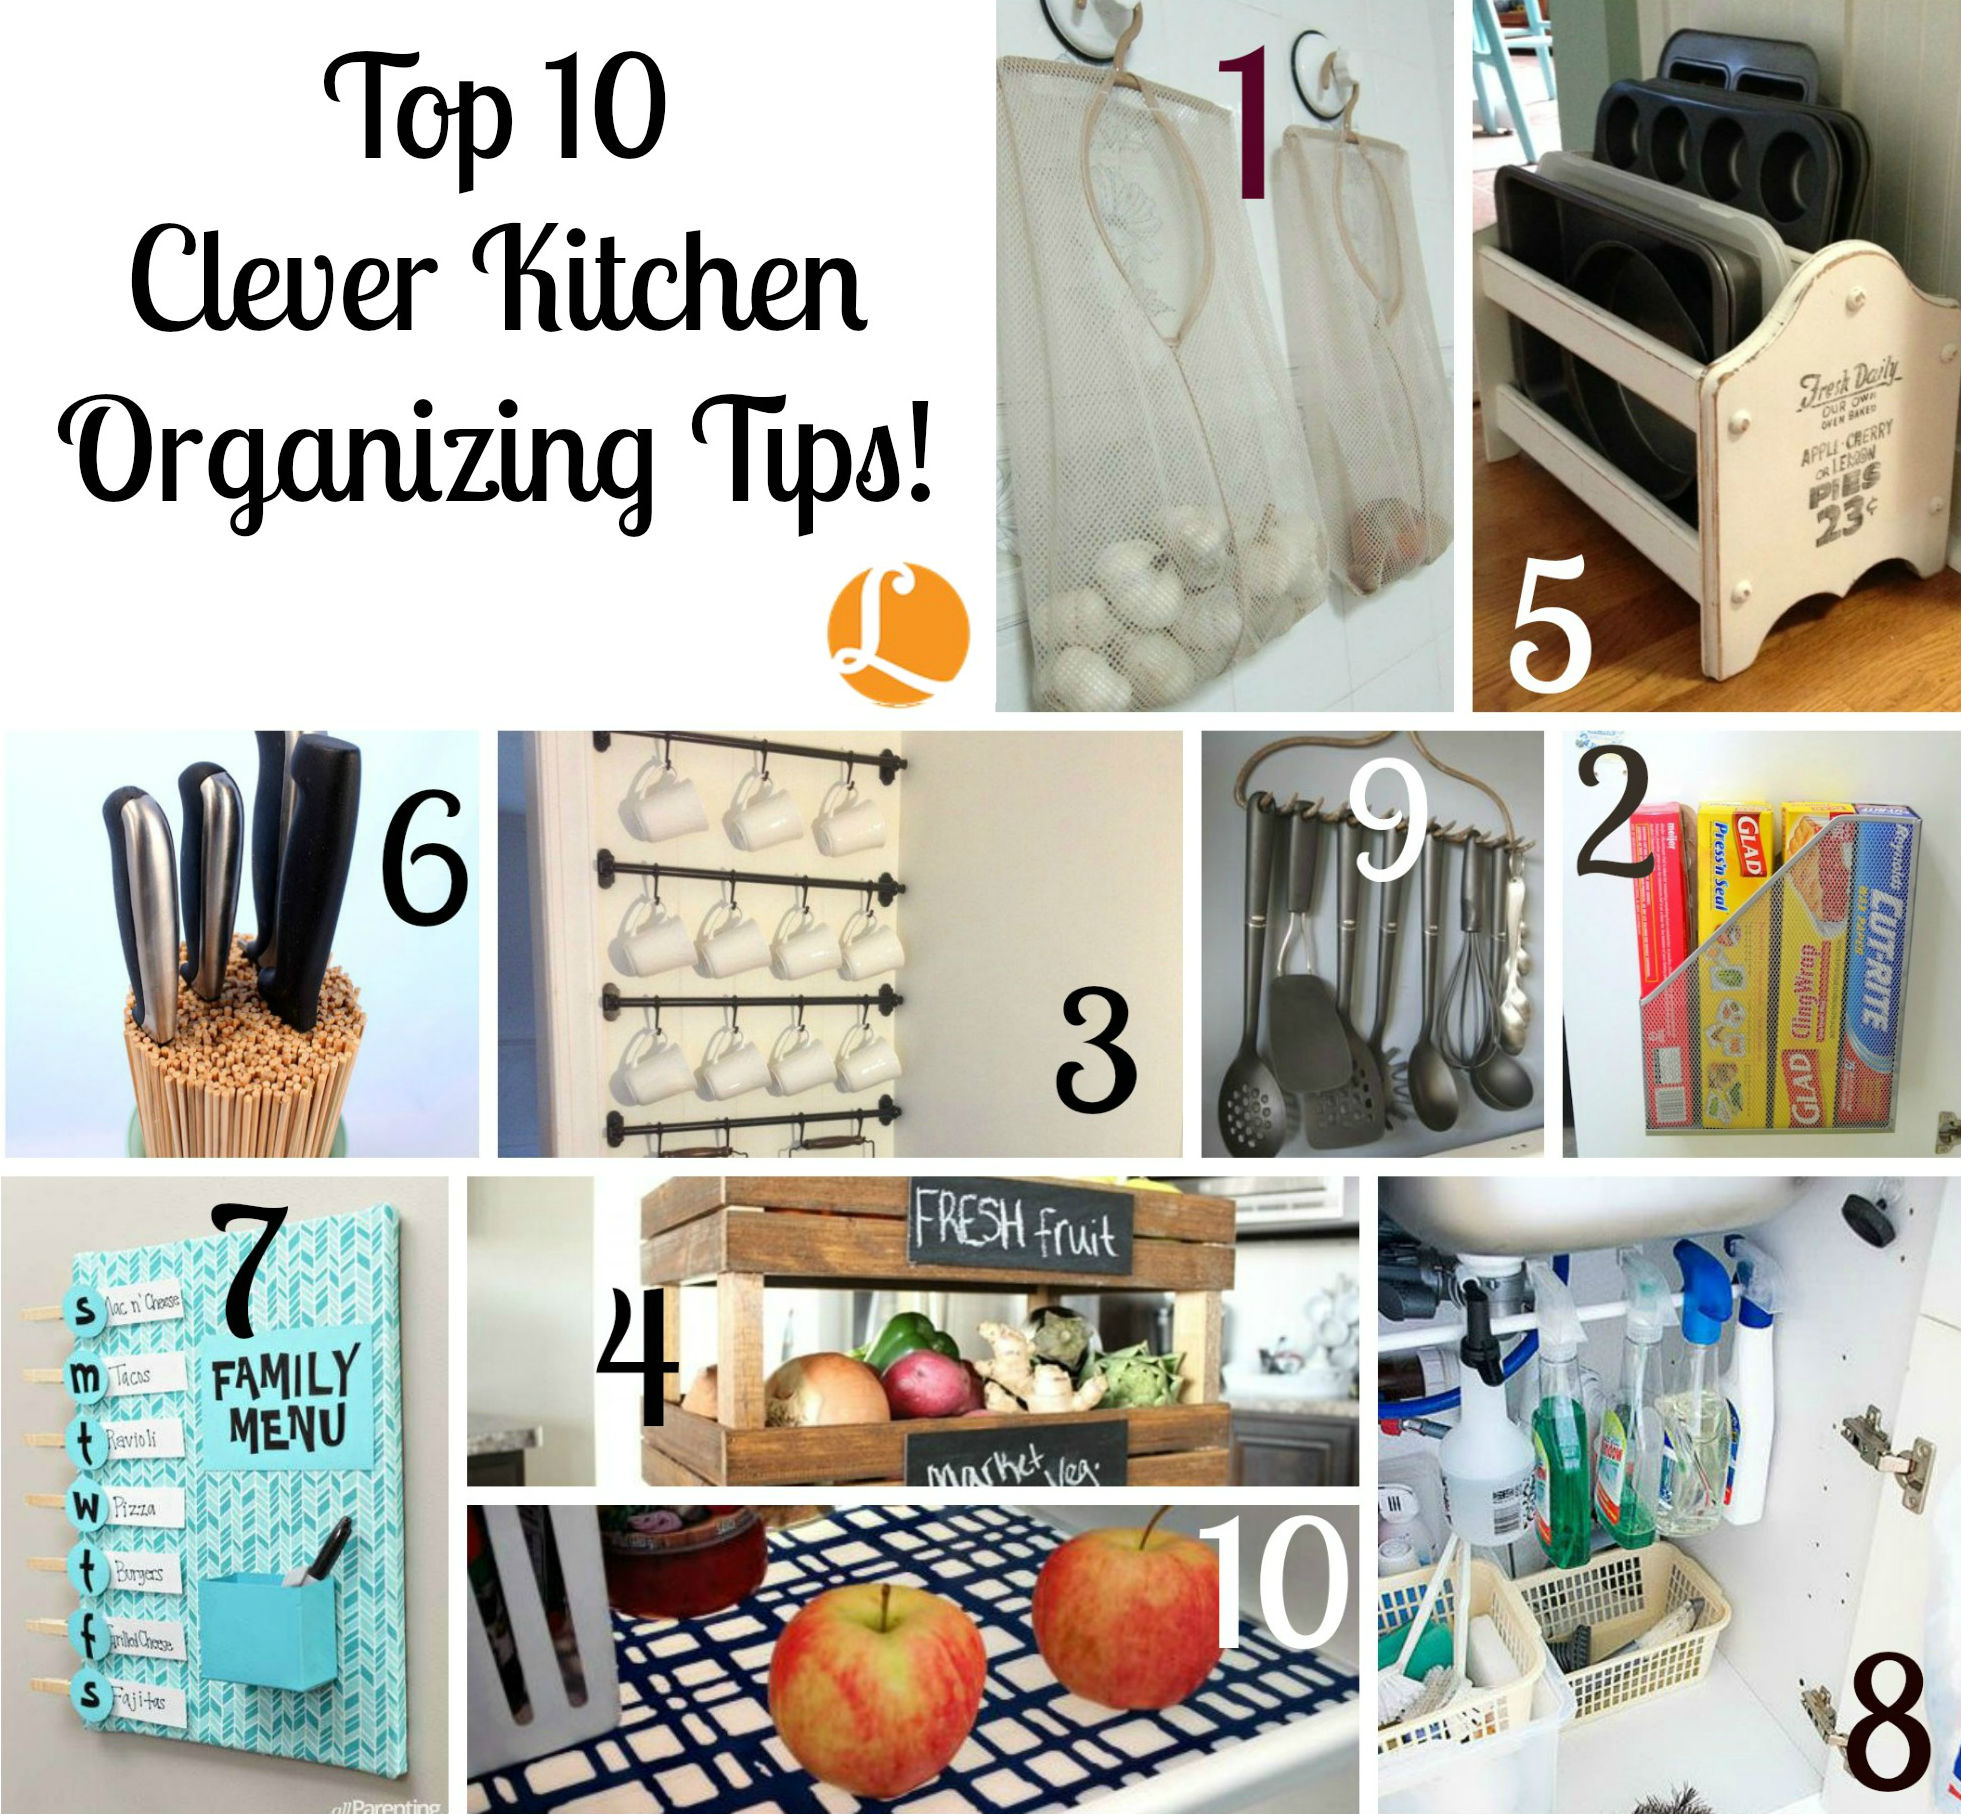 Top 10 Clever Kitchen Organizing Tips -Living Rich With Coupons®